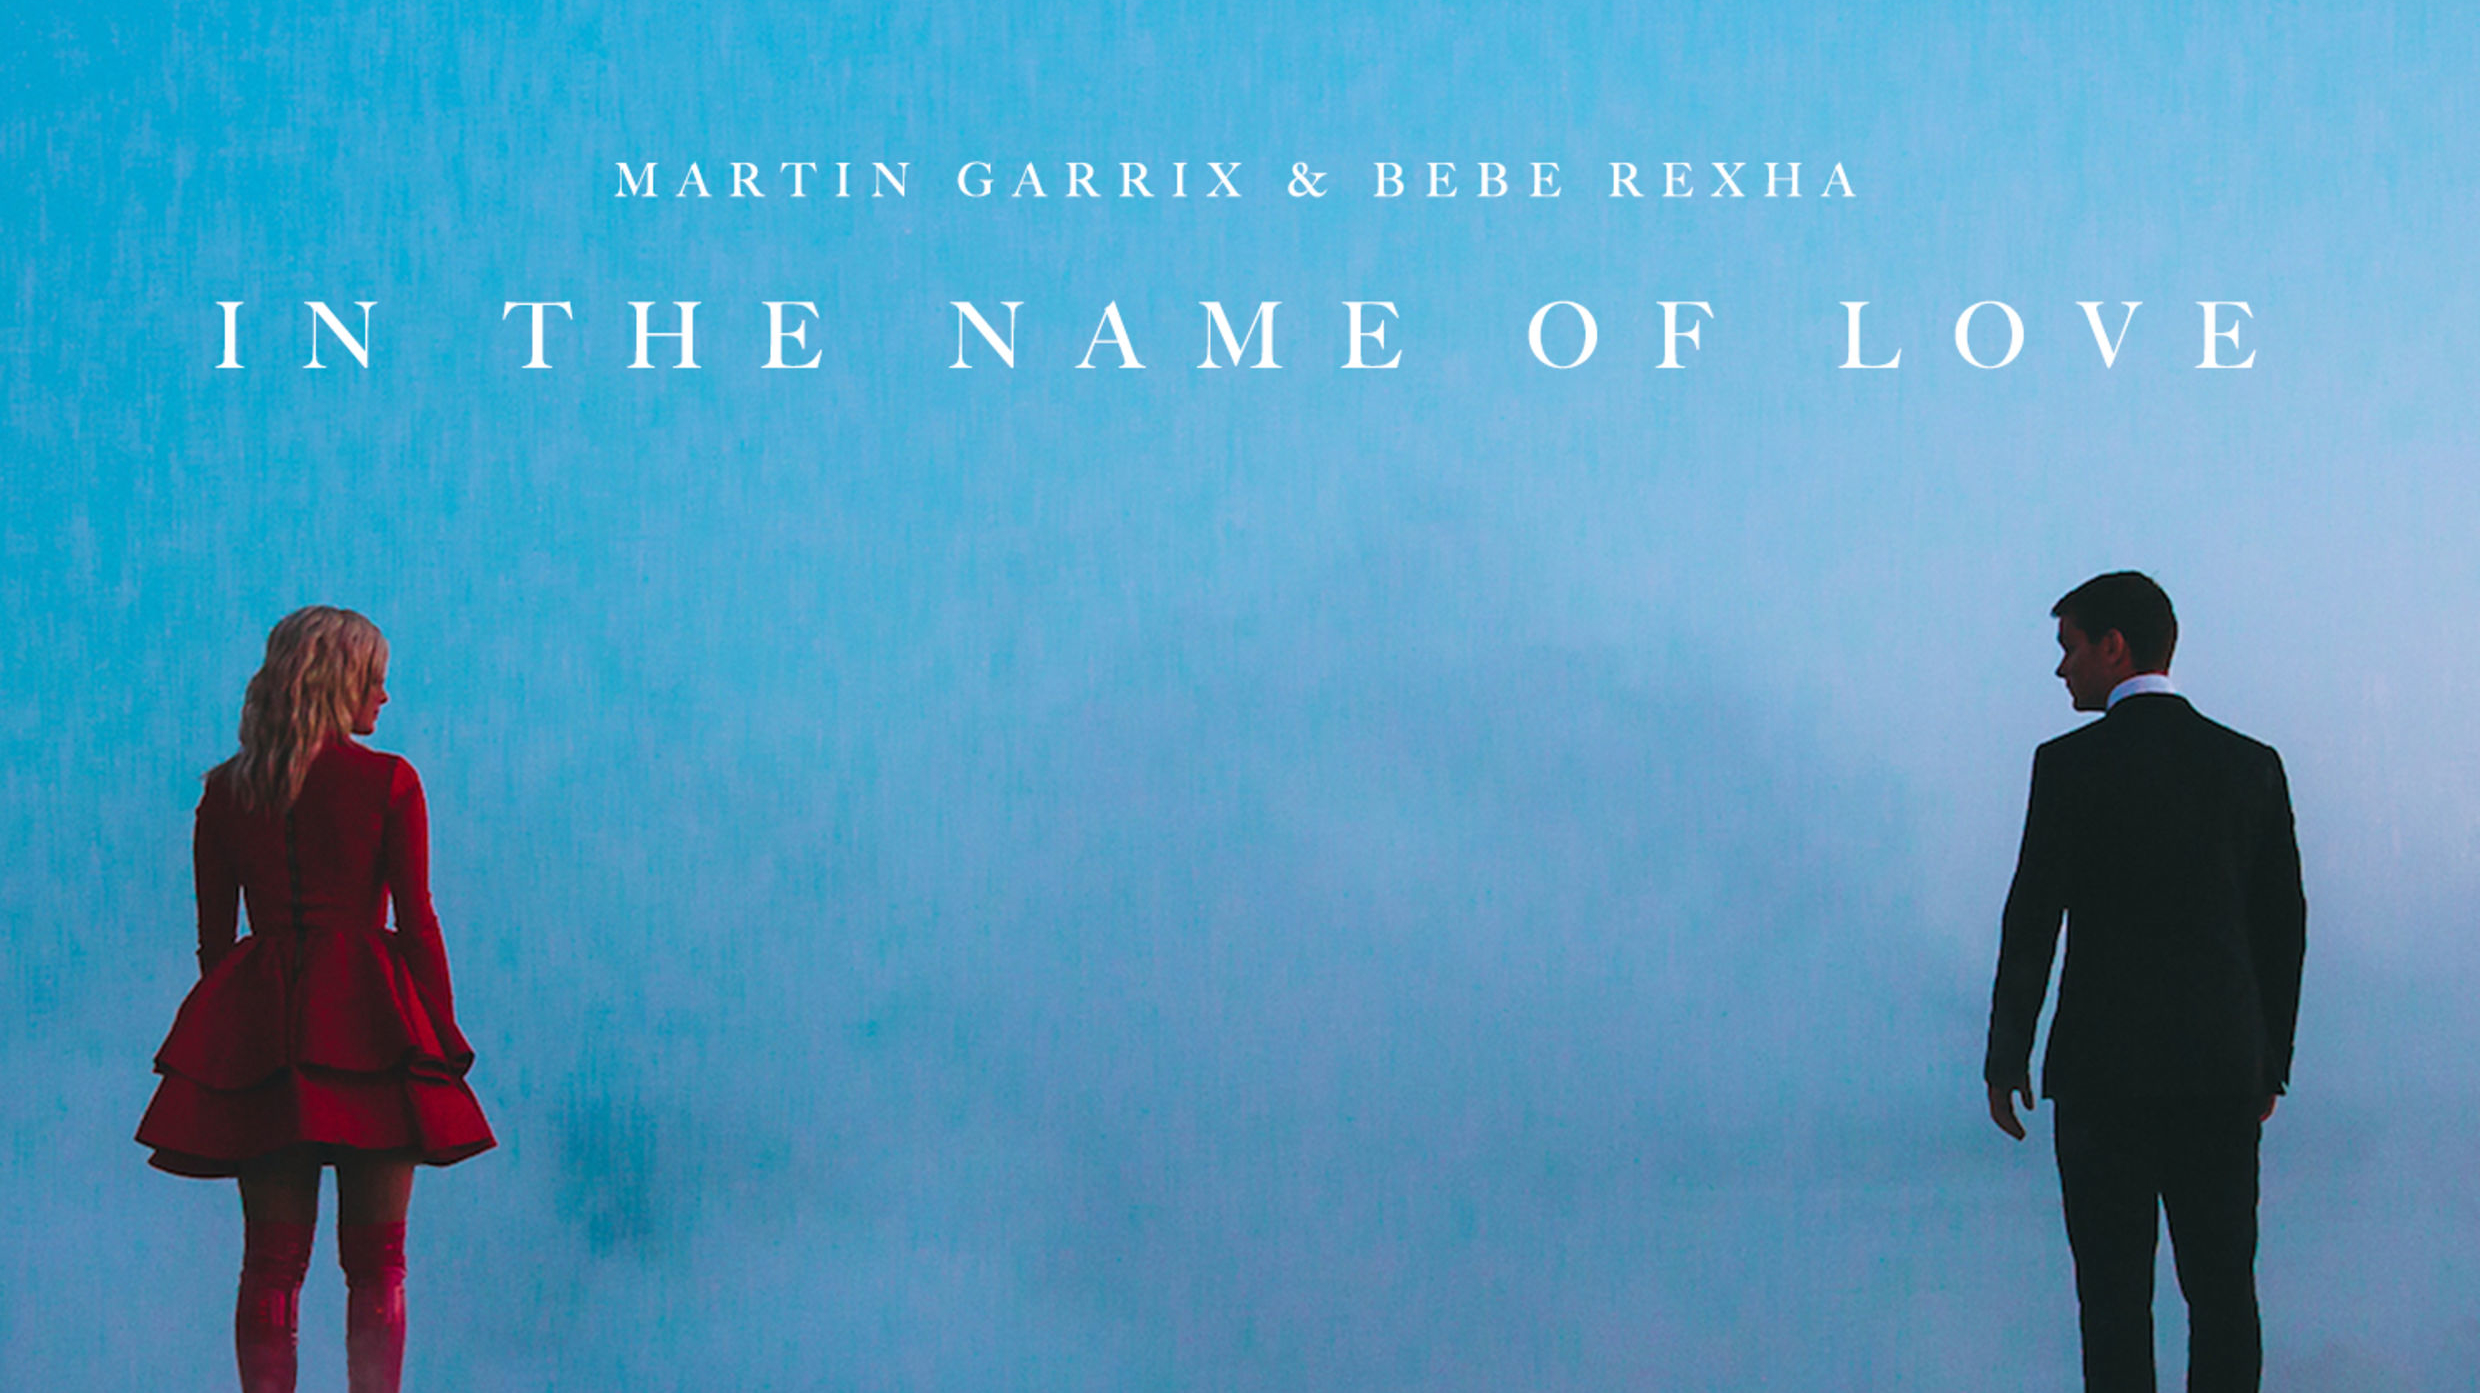 Wallpaper Love Name A : Martin Garrix & Bebe Rexha - In The Name Of Love Full HD Bakgrund and Bakgrund 2480x1393 ID ...